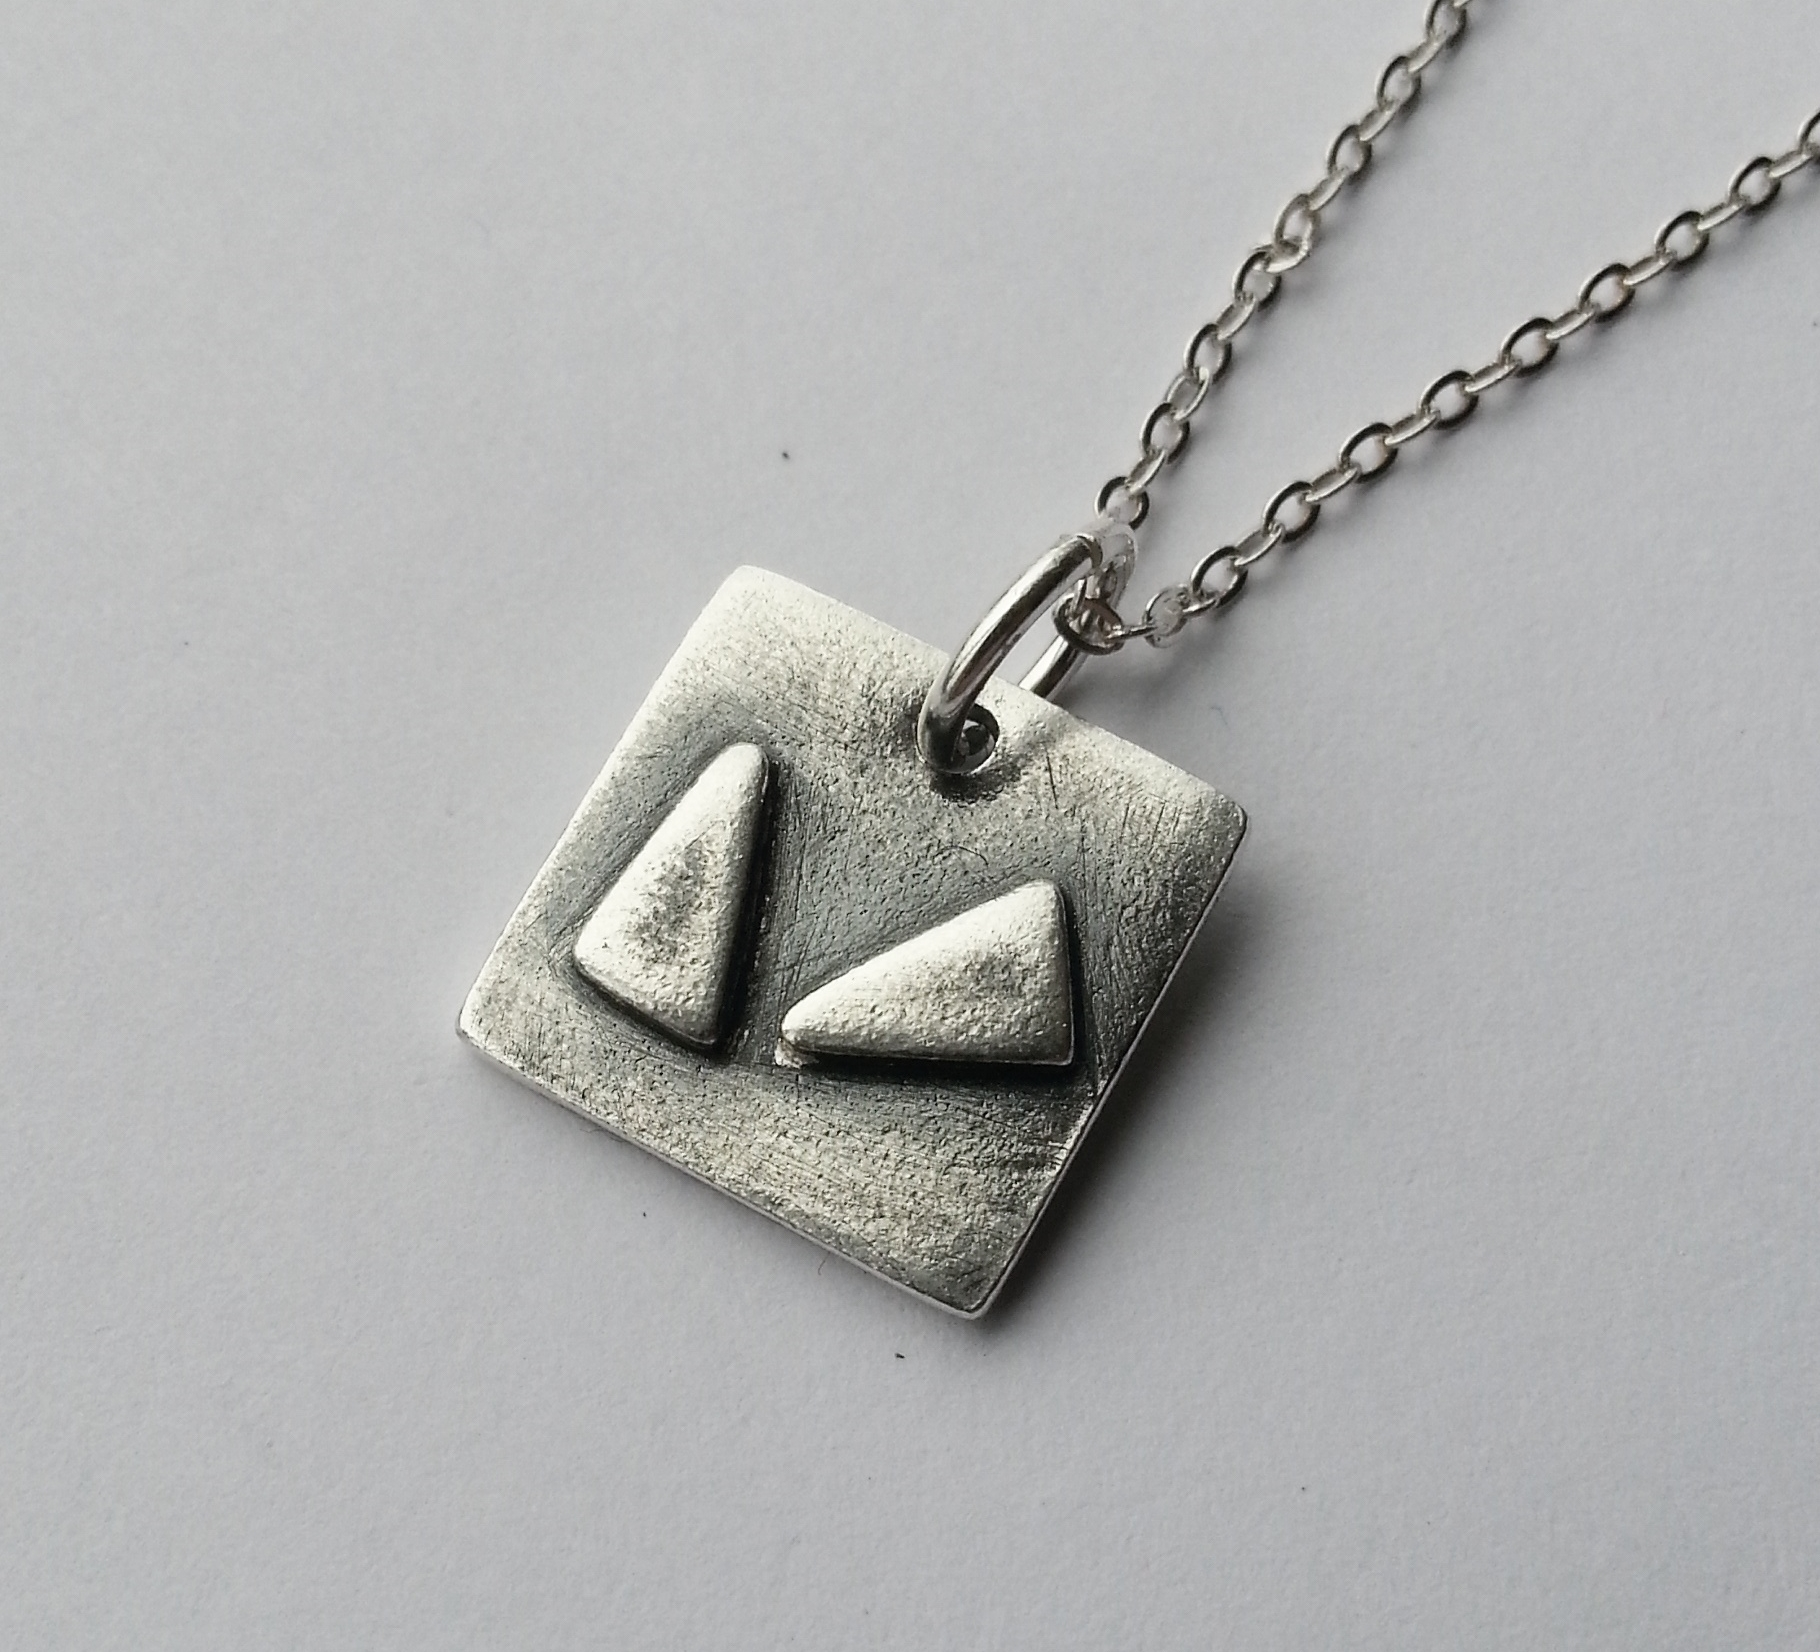 Simple Modern Geometric Necklace, Unique Handcrafted from Recycled Silver. Eco-friendly